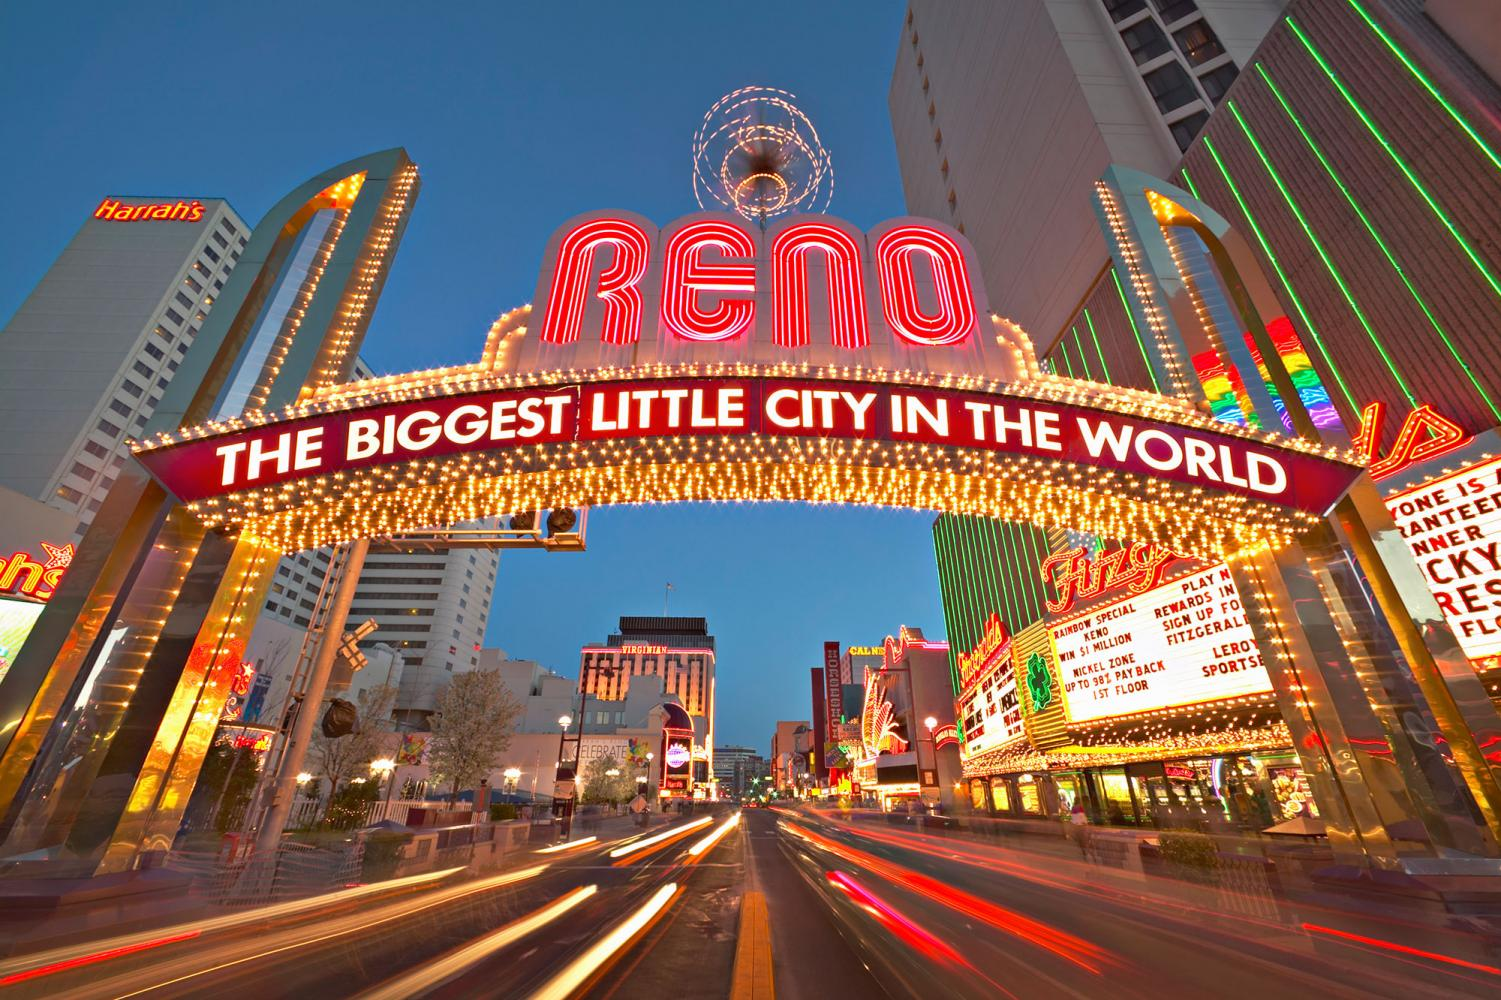 The famous Reno arch. Photo courtesy of Google.